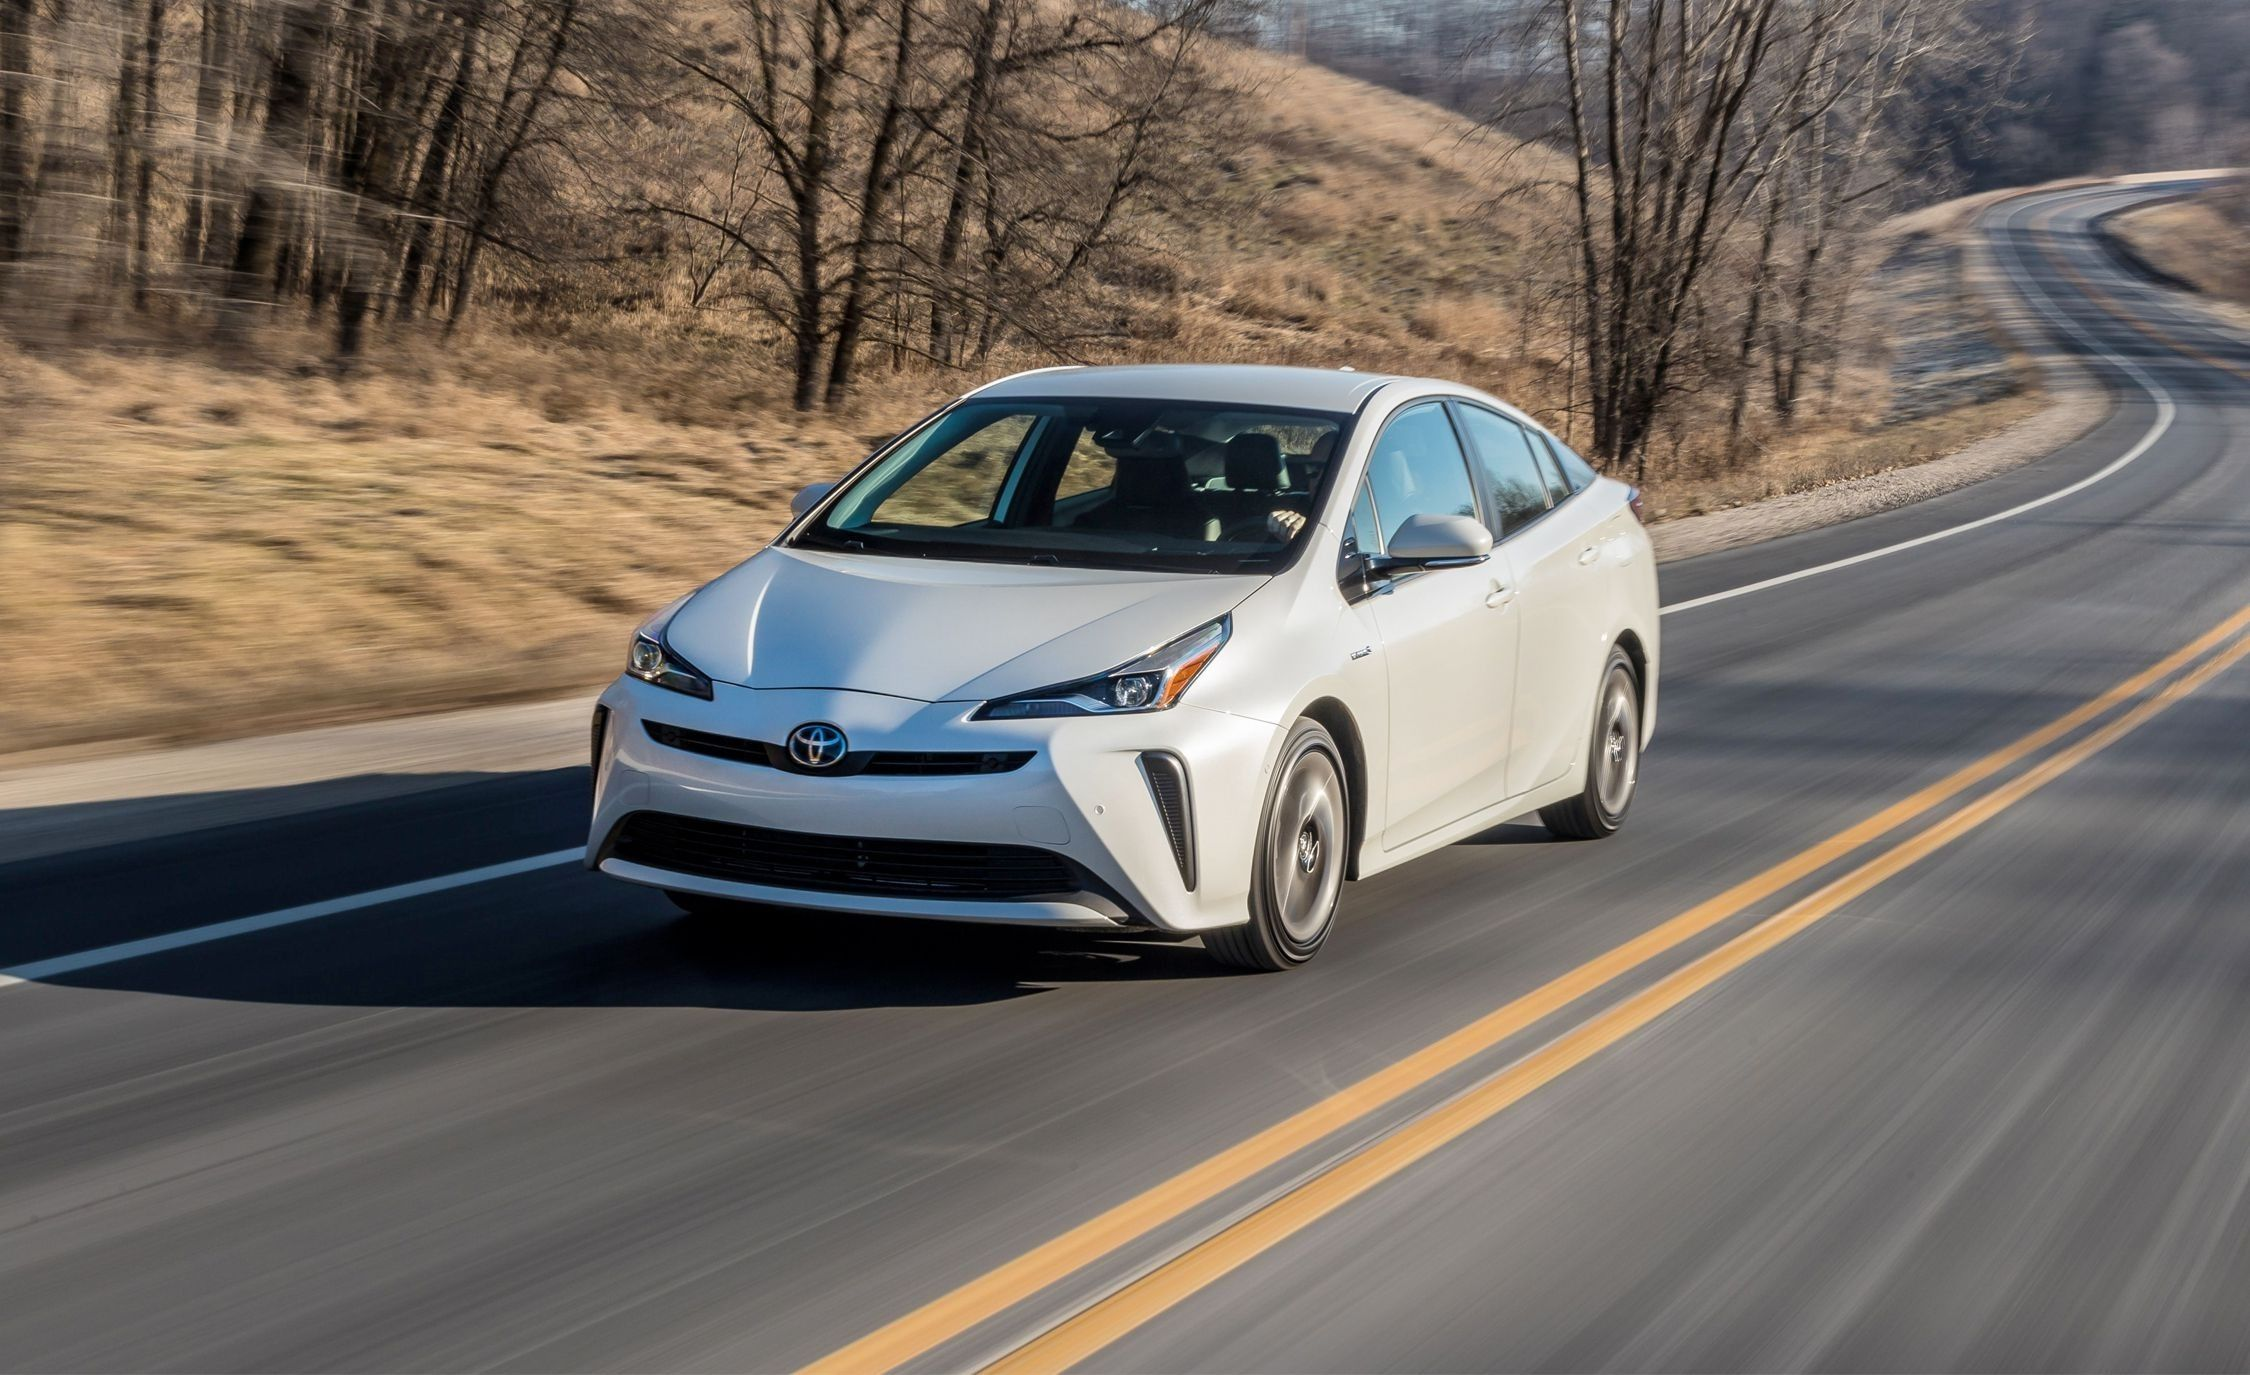 2019 Toyota Prius Awd Redesign Price And Review